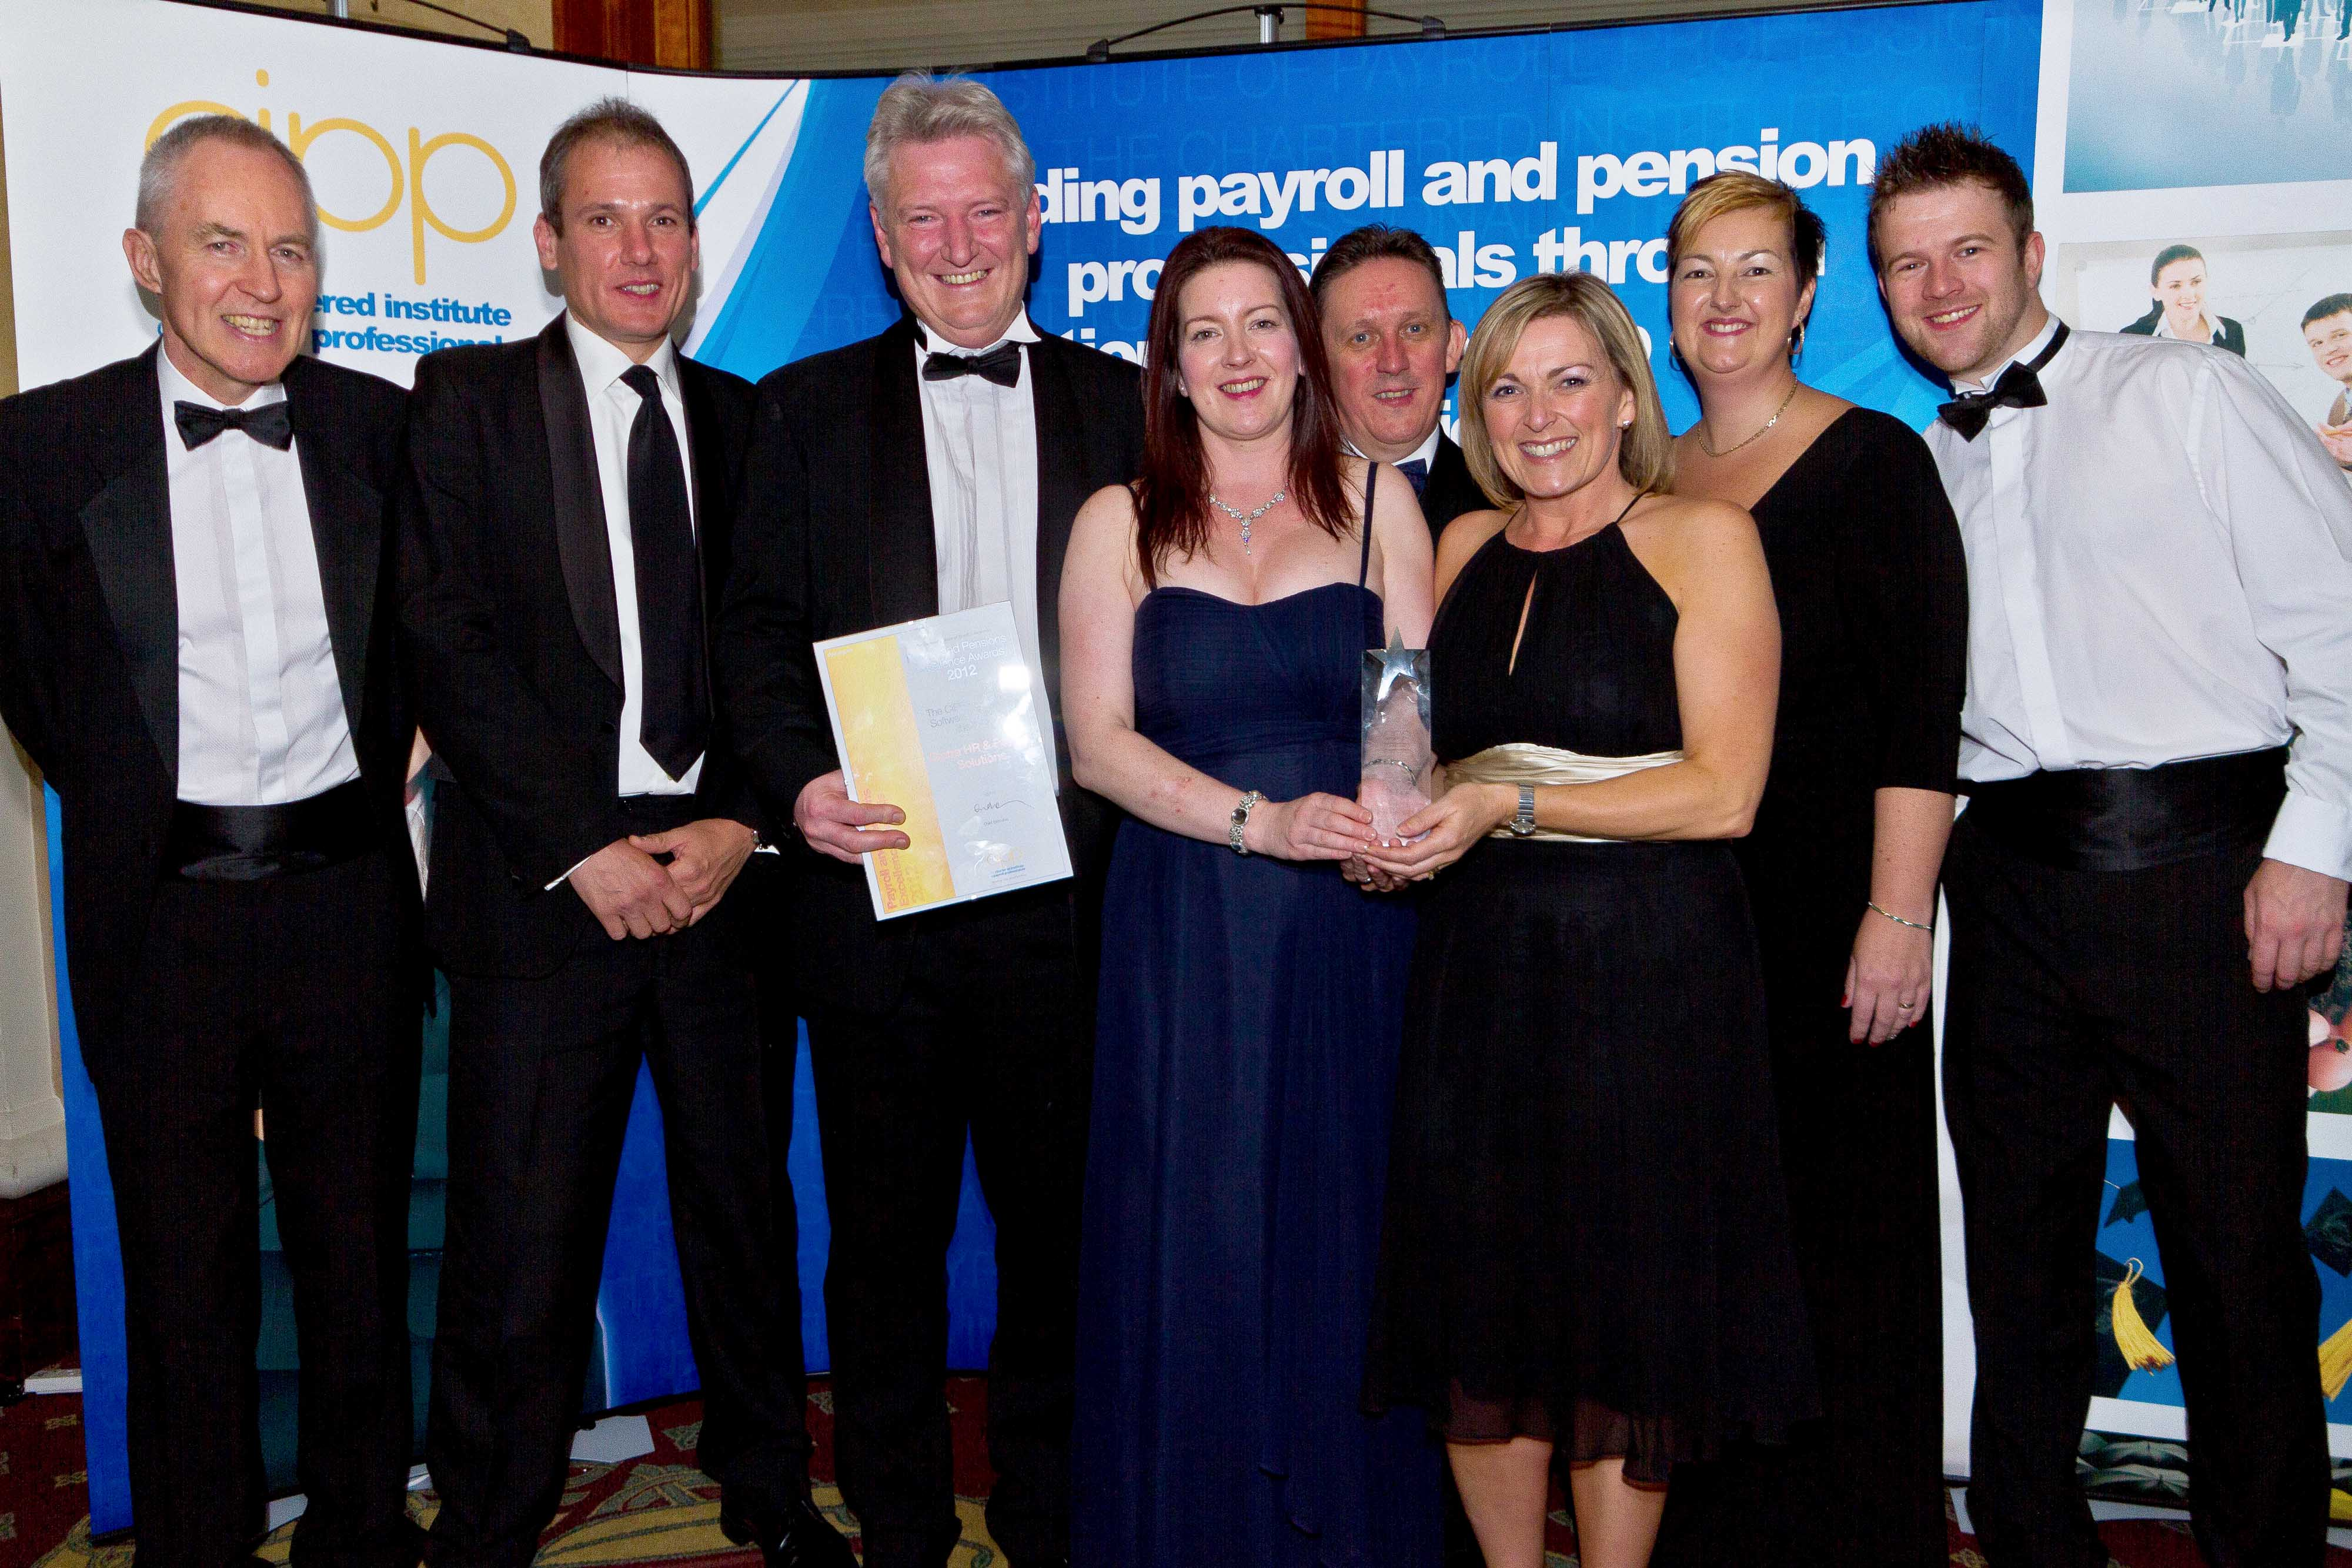 The proud Cintra team and their award at the CIPP Awards evening